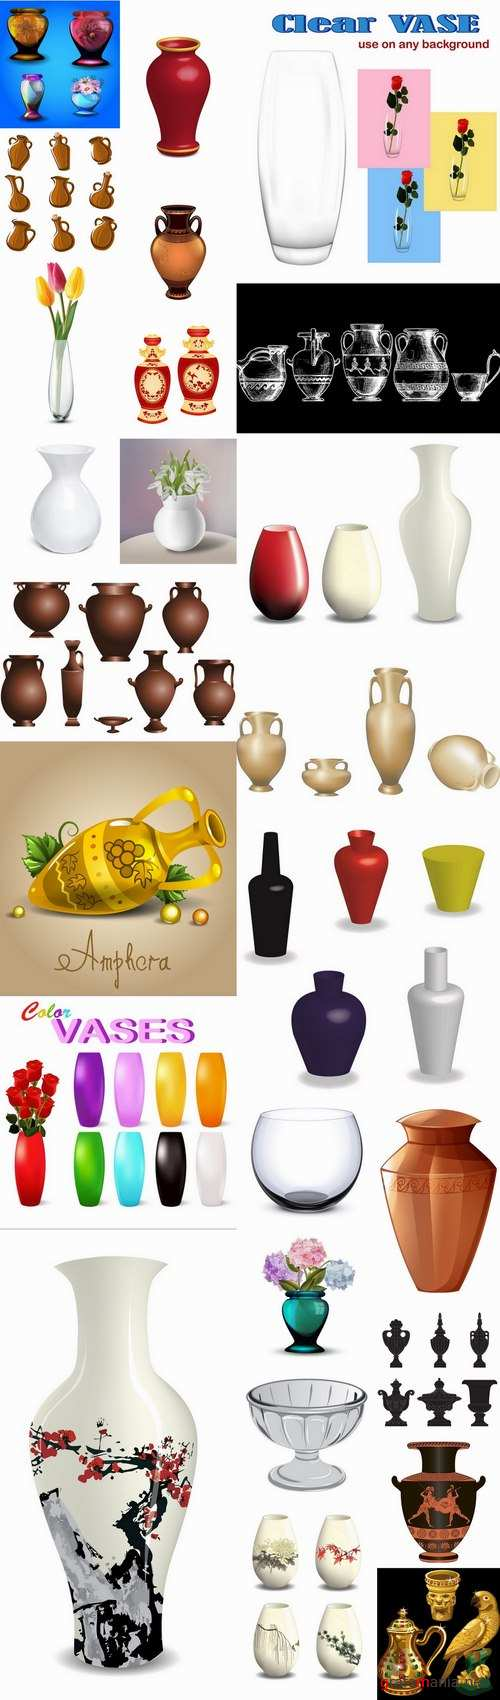 Amphora of vase vessel capacity 25 EPS